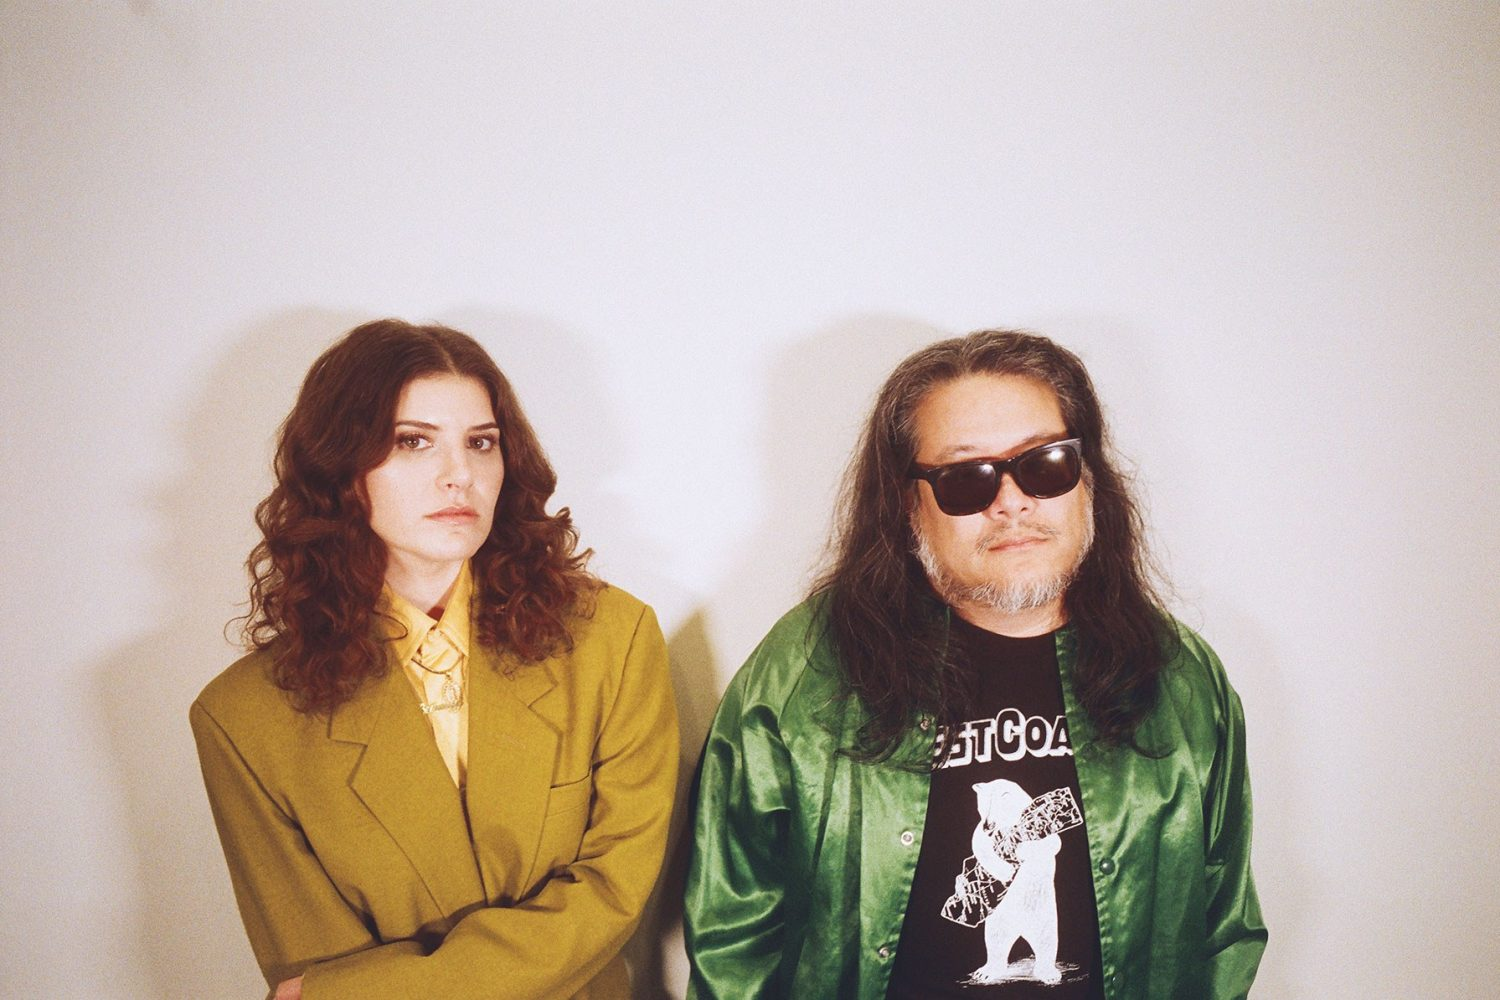 Best Coast are going to host a virtual show, performing their debut album in full